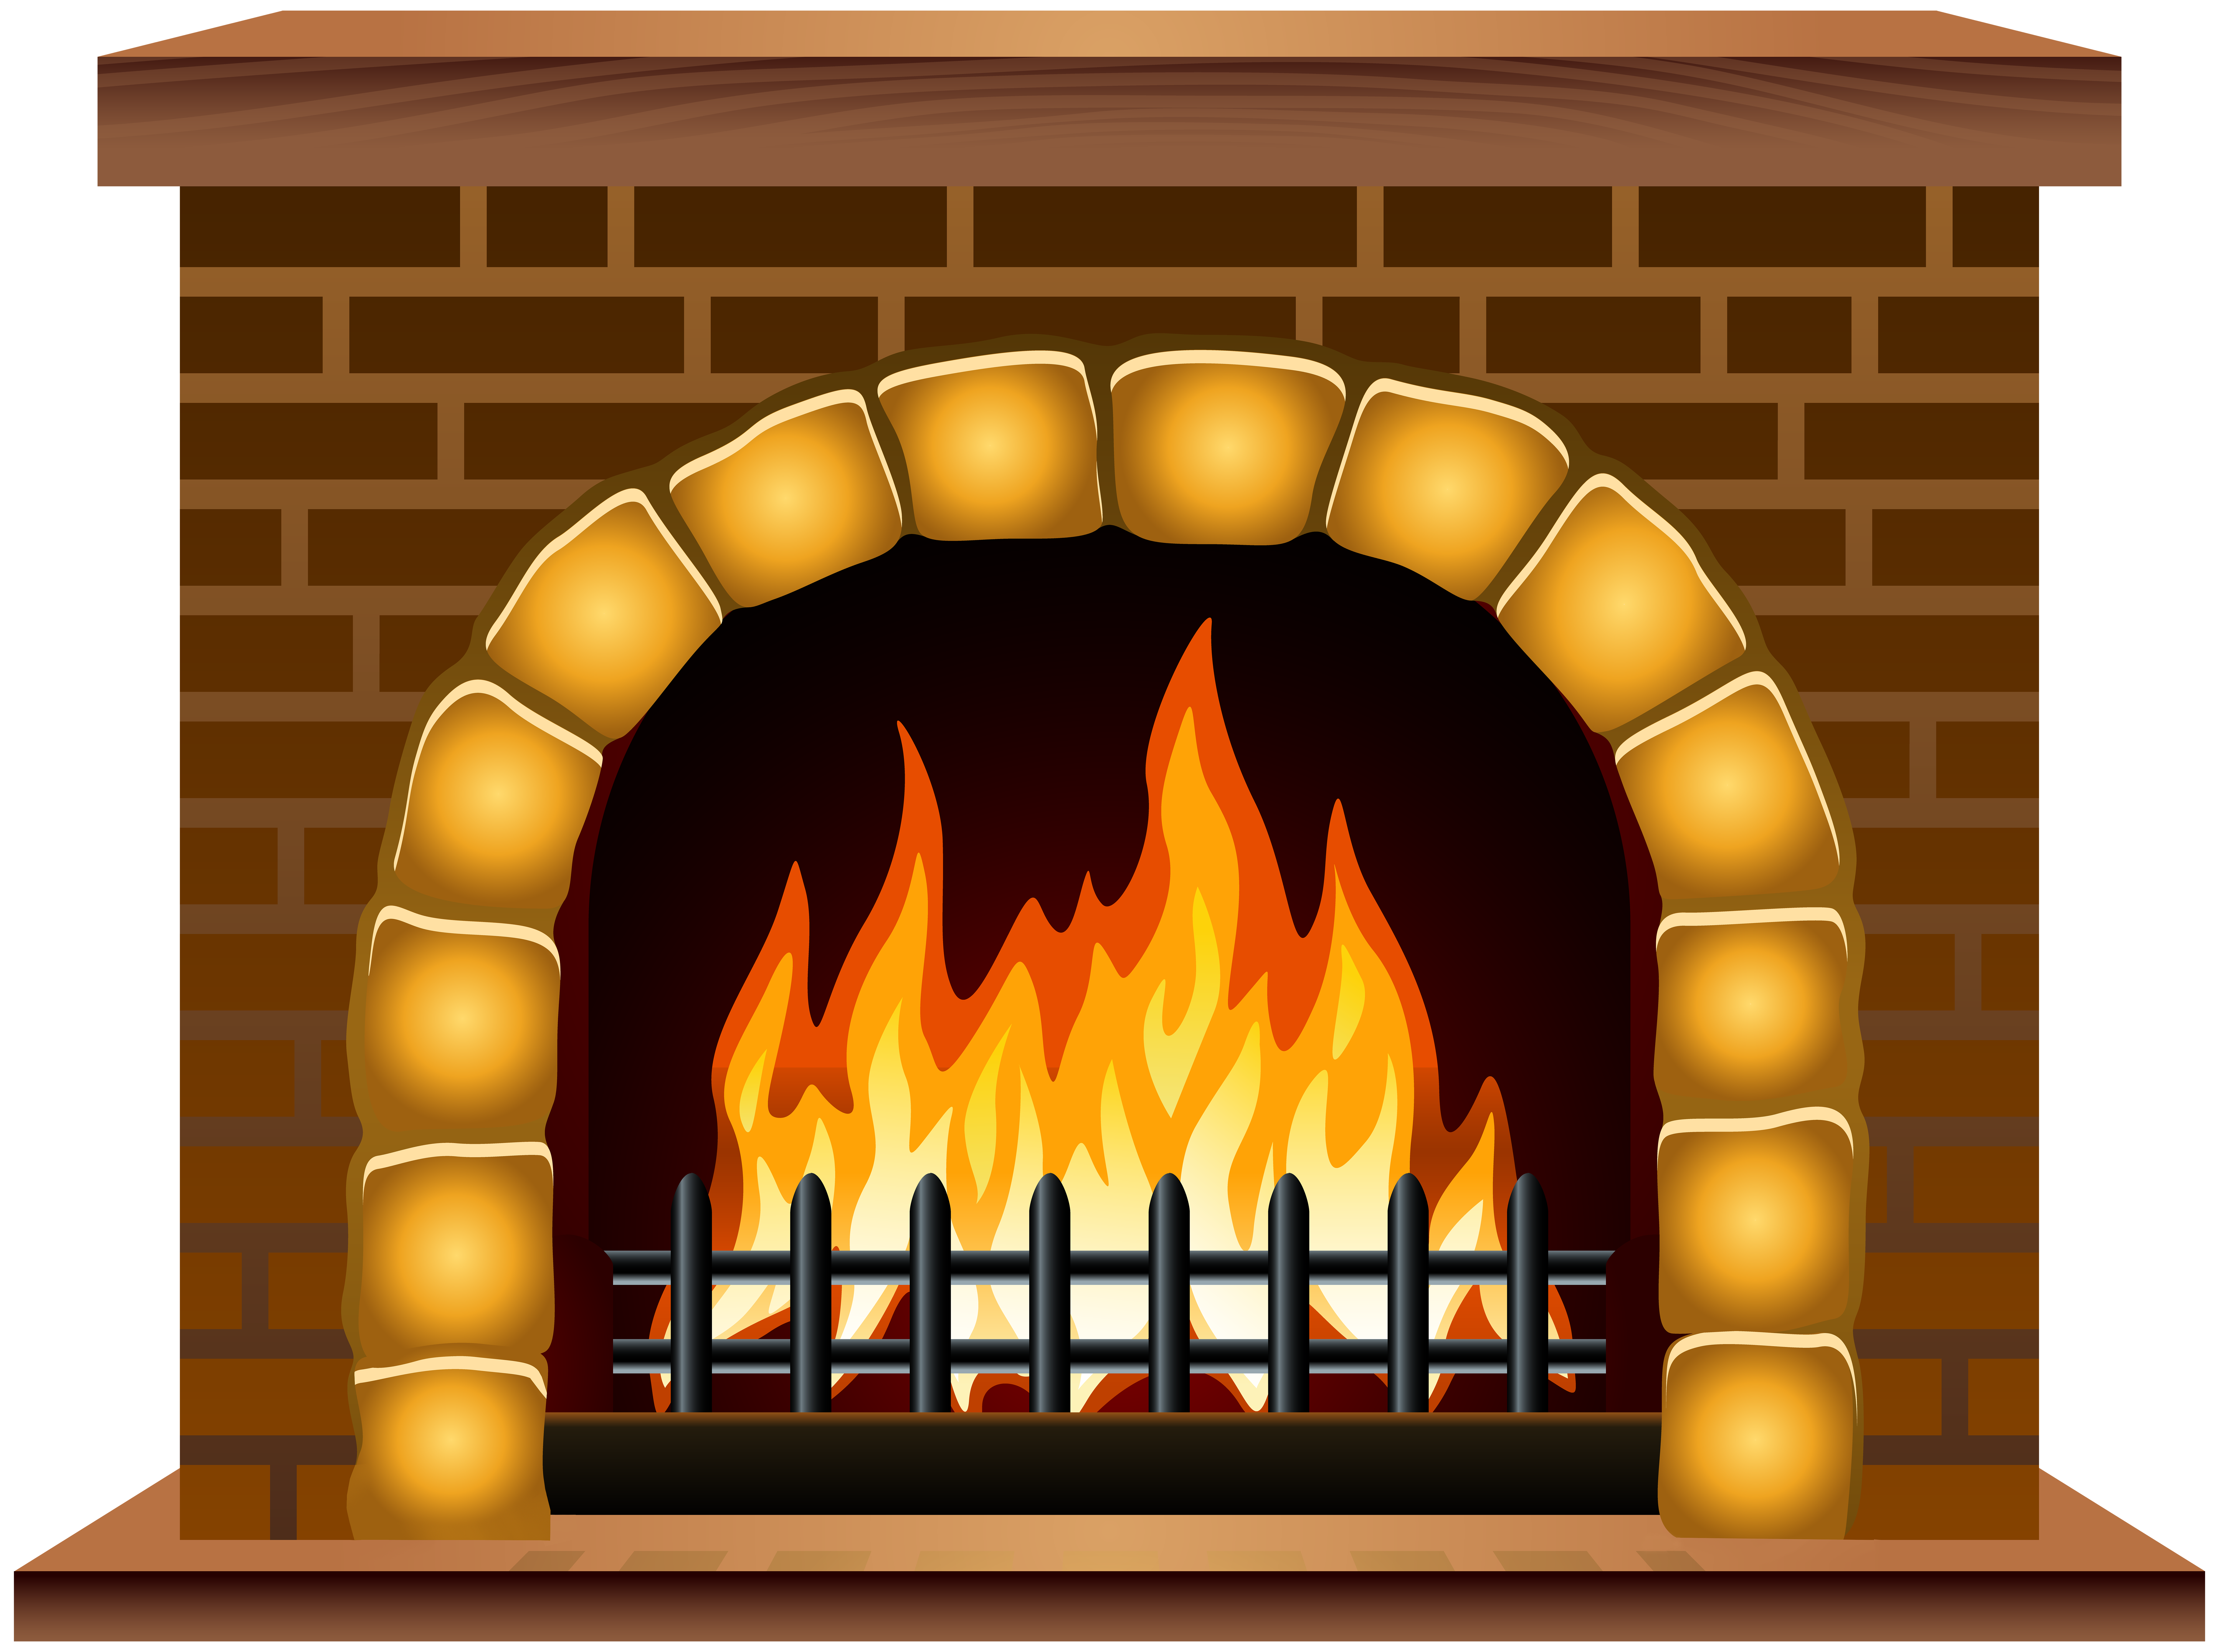 Fireplace clipart. Png clip art image